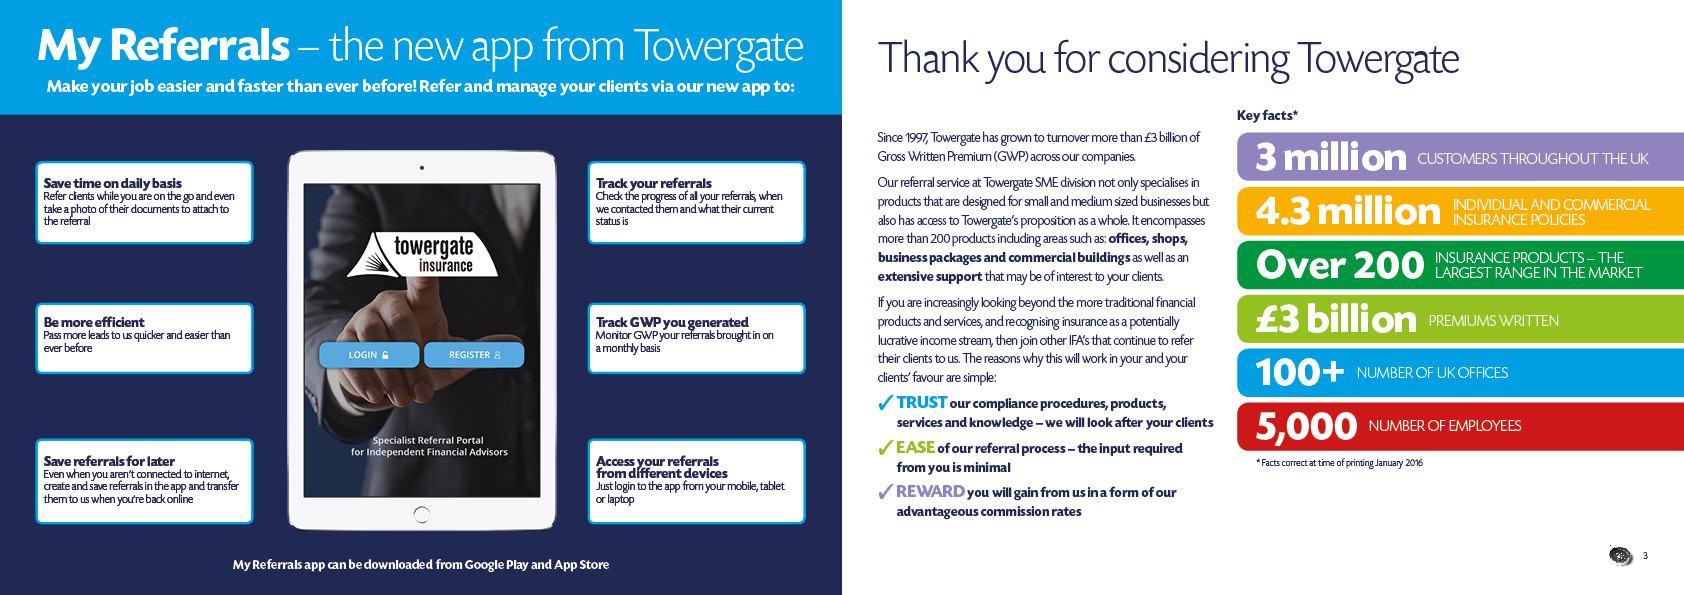 towergate-spread